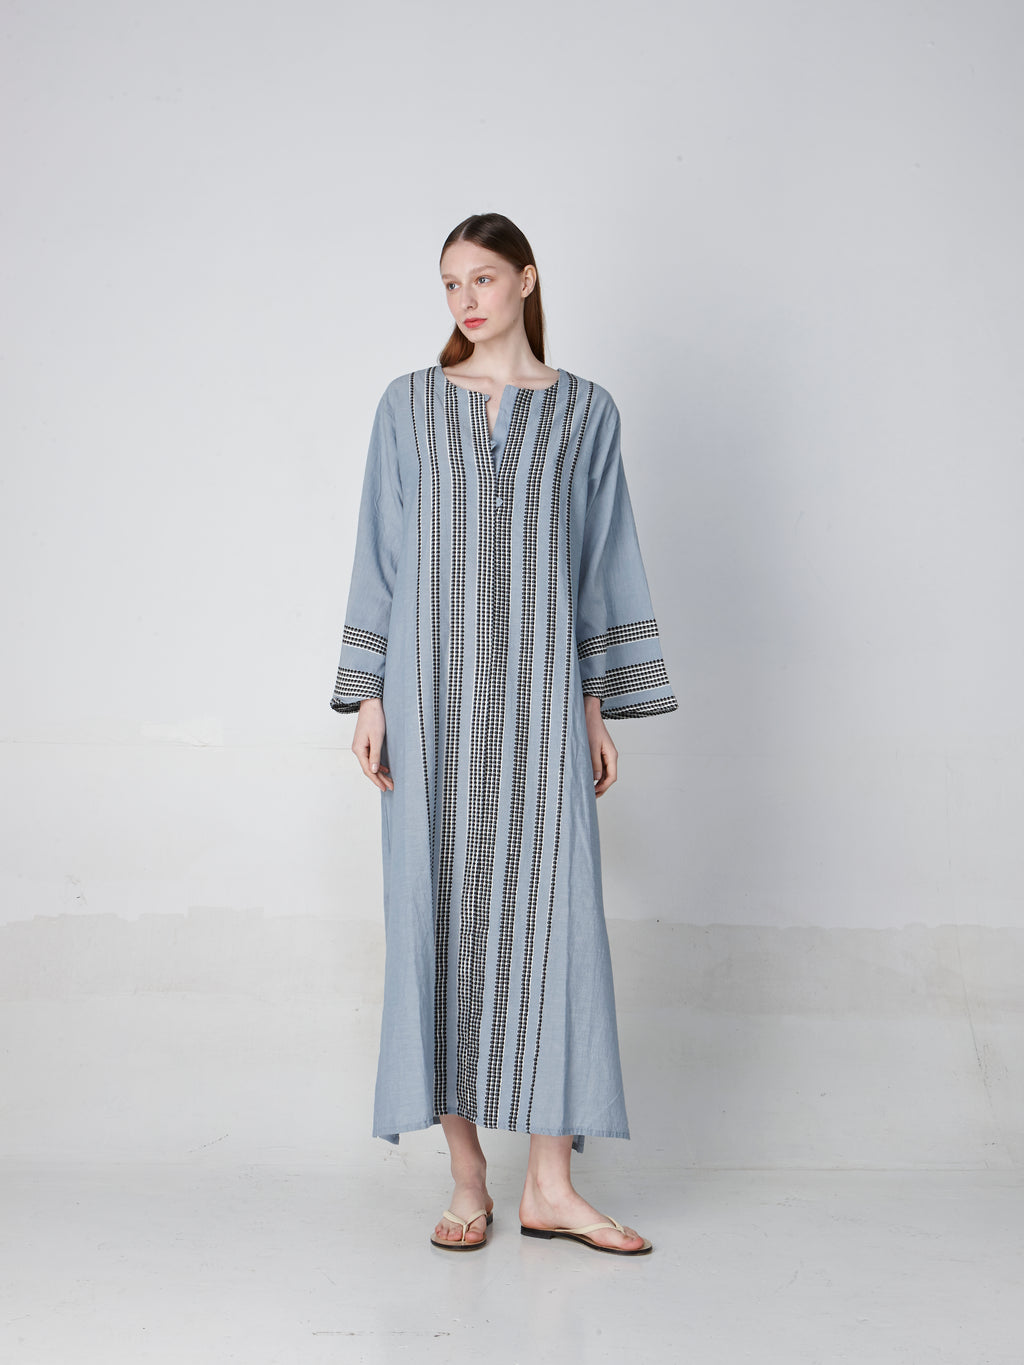 MY Moonlight in the Aegean Sea Tunic